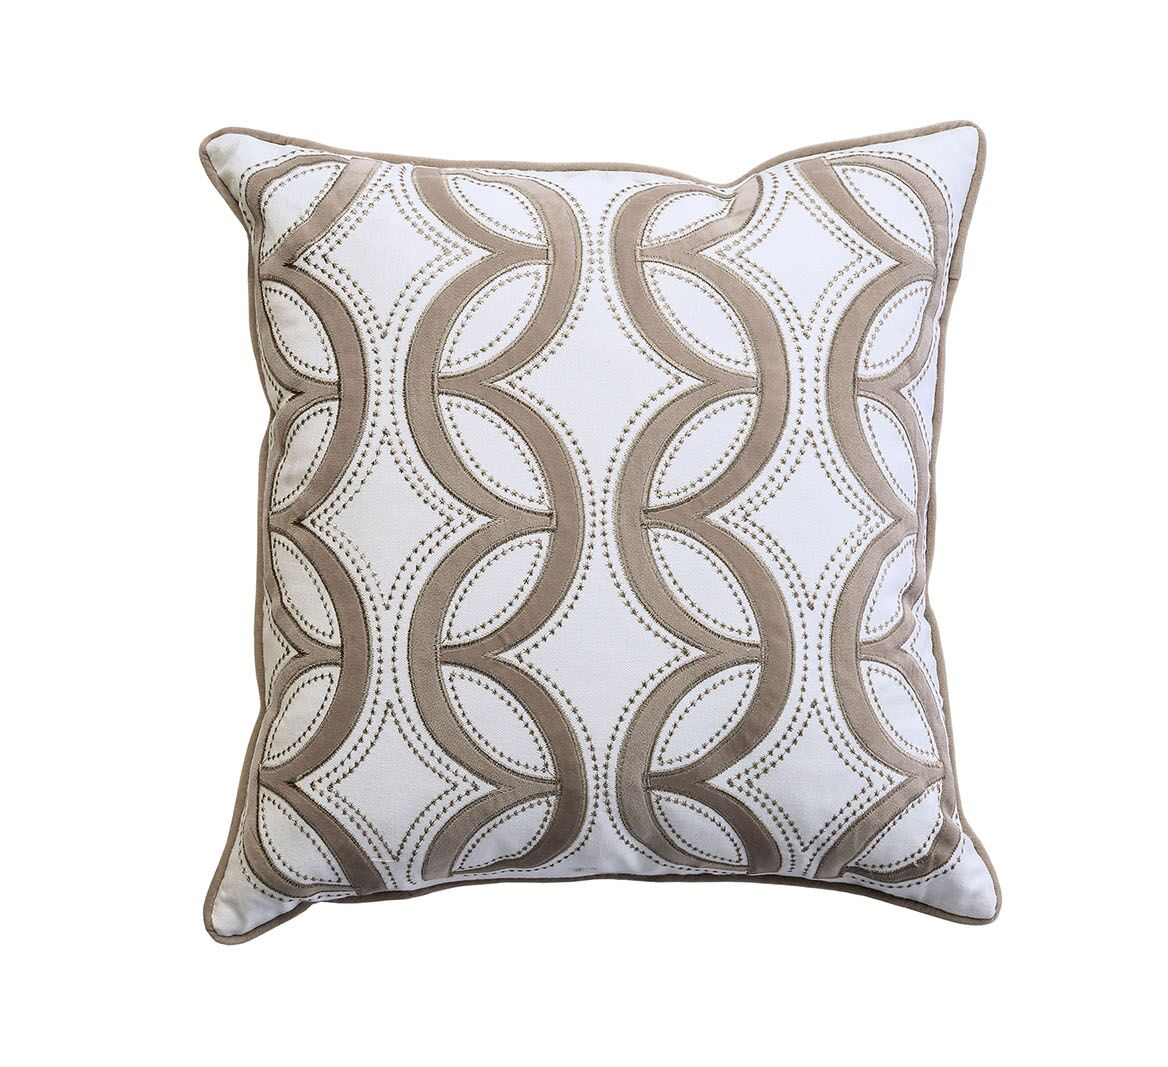 Nicholas Contemporary Waterflow Feather Cotton Throw Pillow